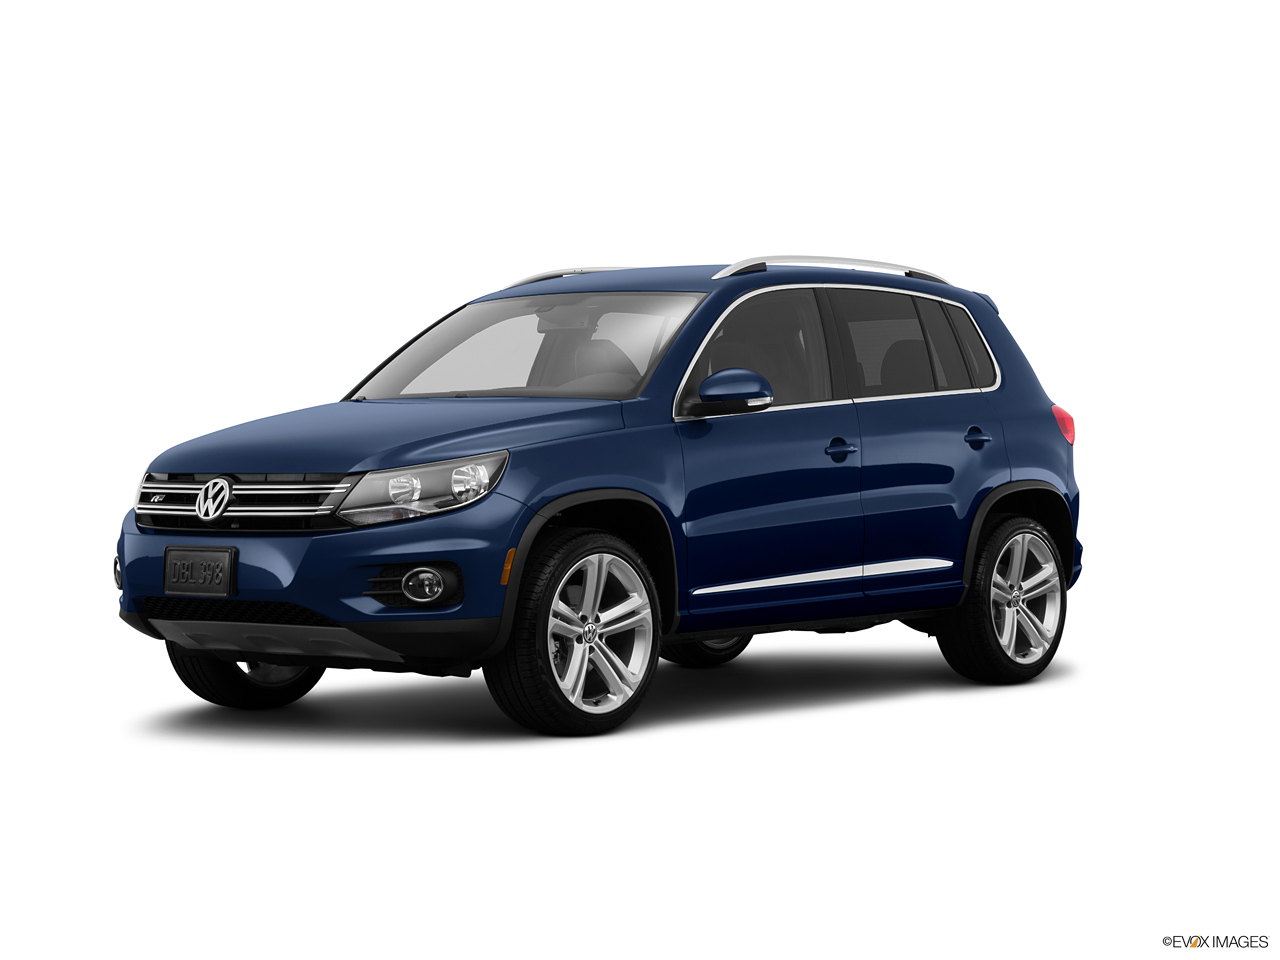 car pictures list for volkswagen tiguan 2016 2 0l r line uae yallamotor. Black Bedroom Furniture Sets. Home Design Ideas